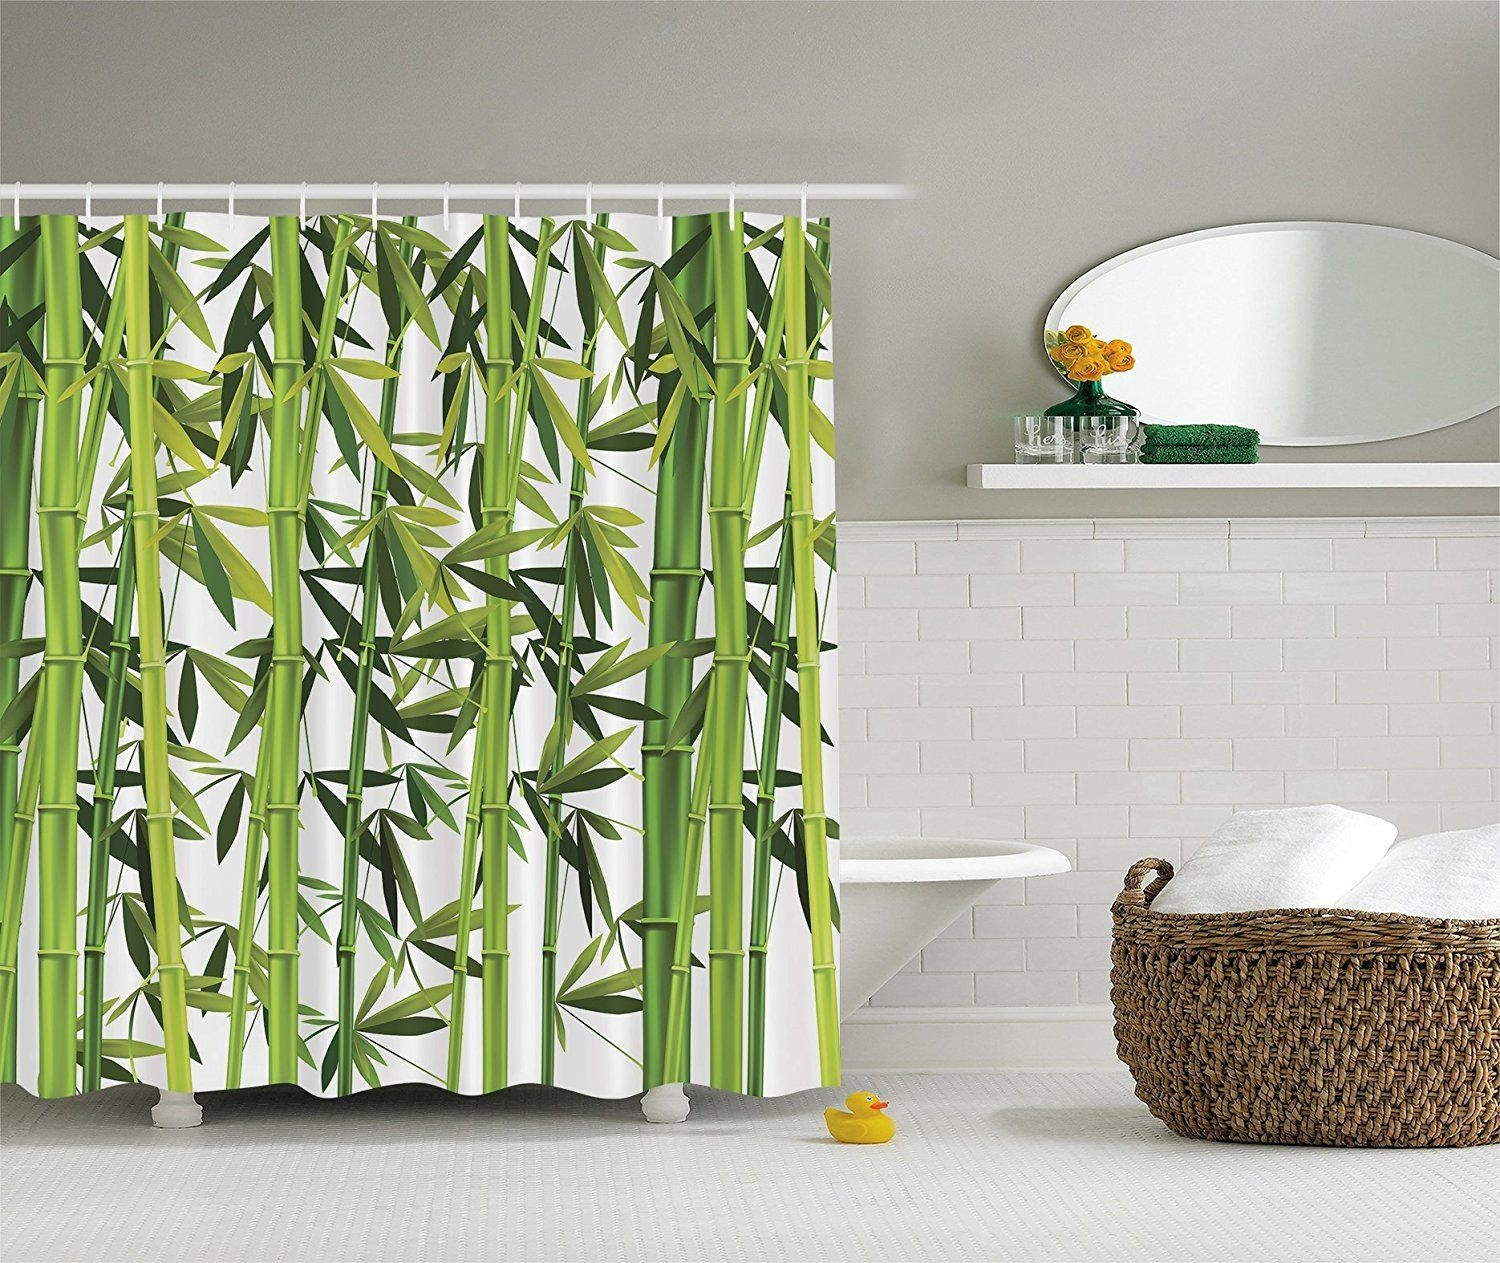 Bamboo Trees Green Nature Art Prints Wildlife High Resolution Bath Home Textile Design Spa